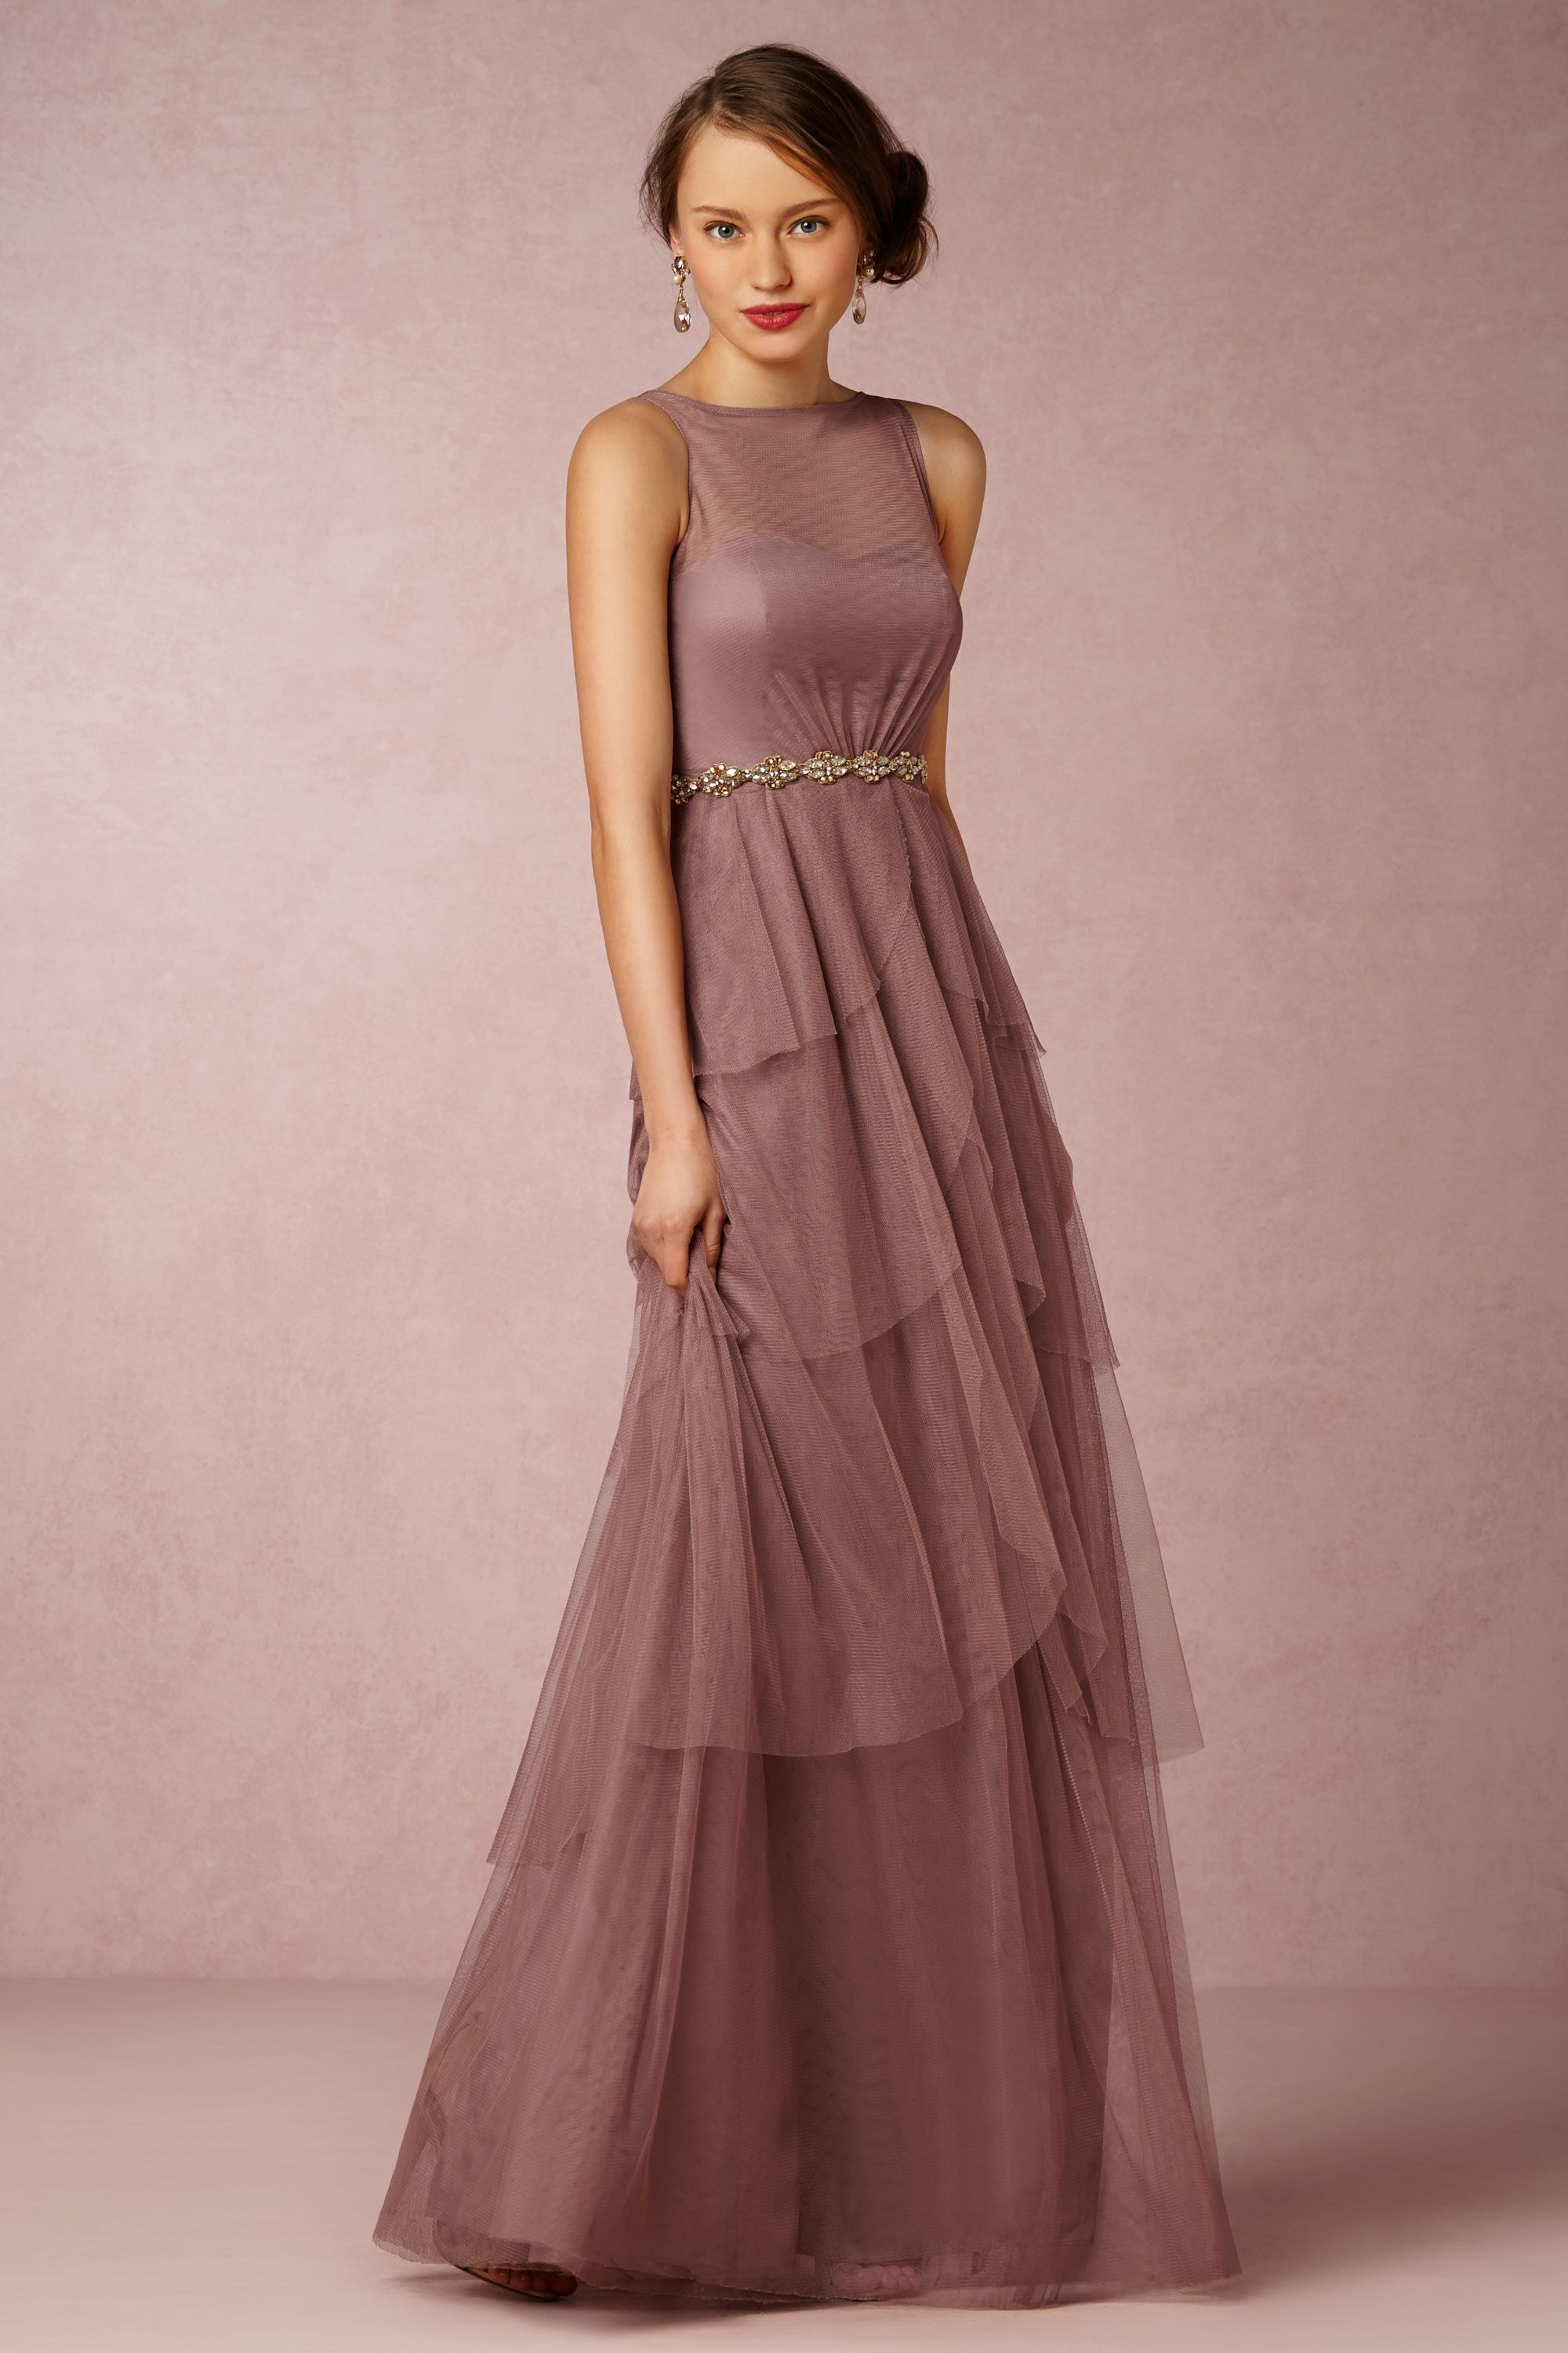 Hyacinth Dress from @BHLDN | Bridesmaid Dresses | Pinterest | Boda y ...